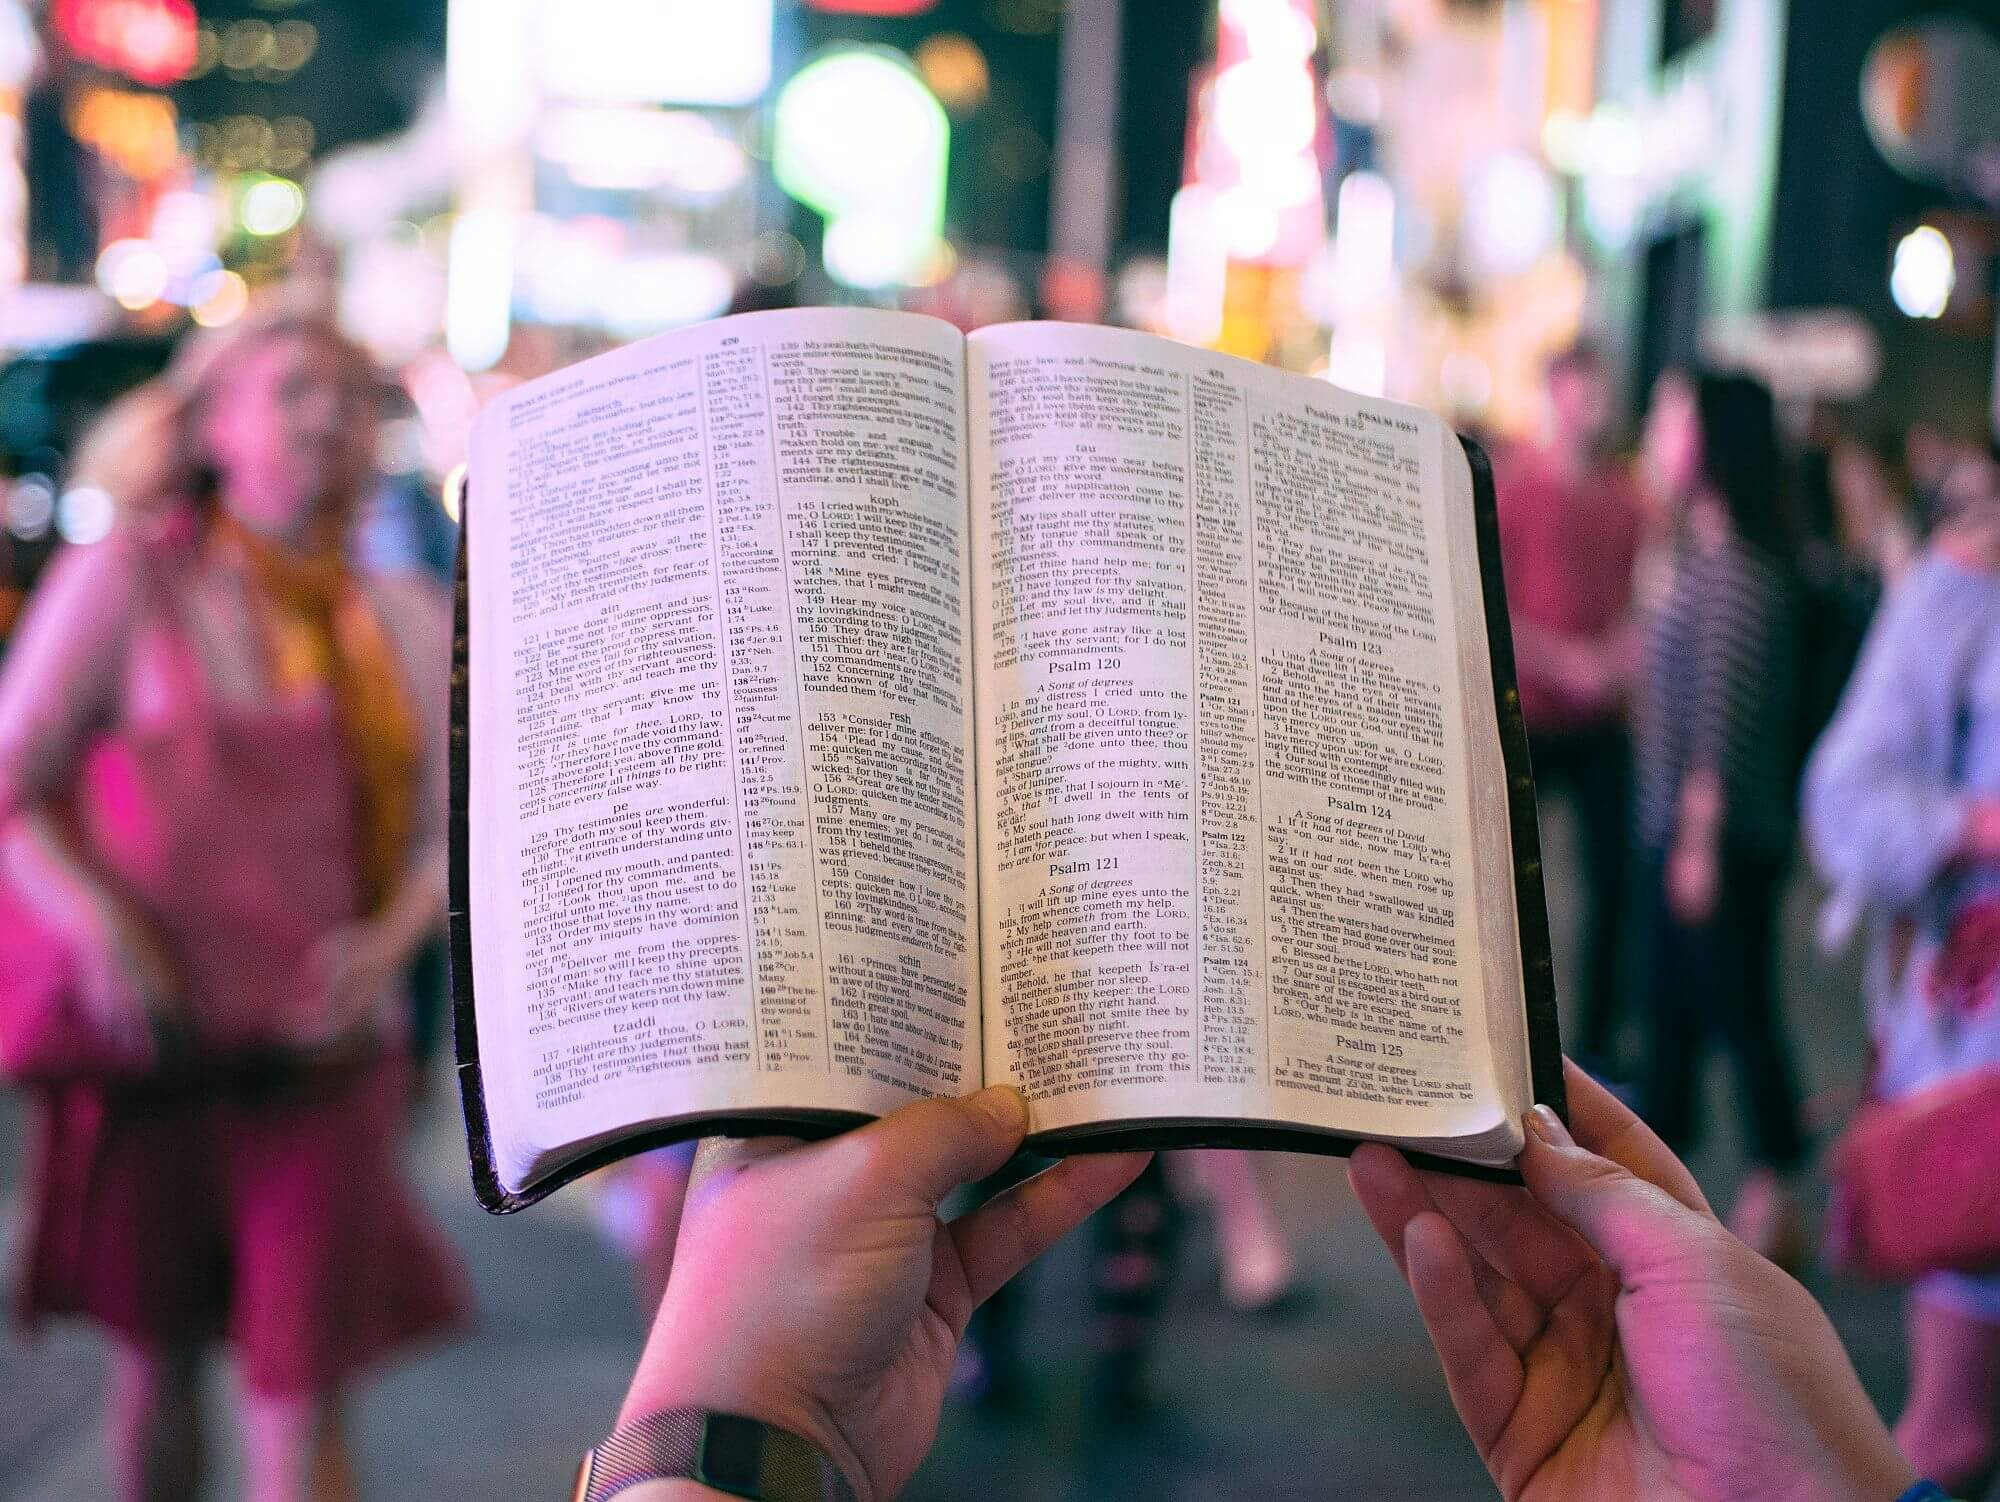 open bible walking through crowd